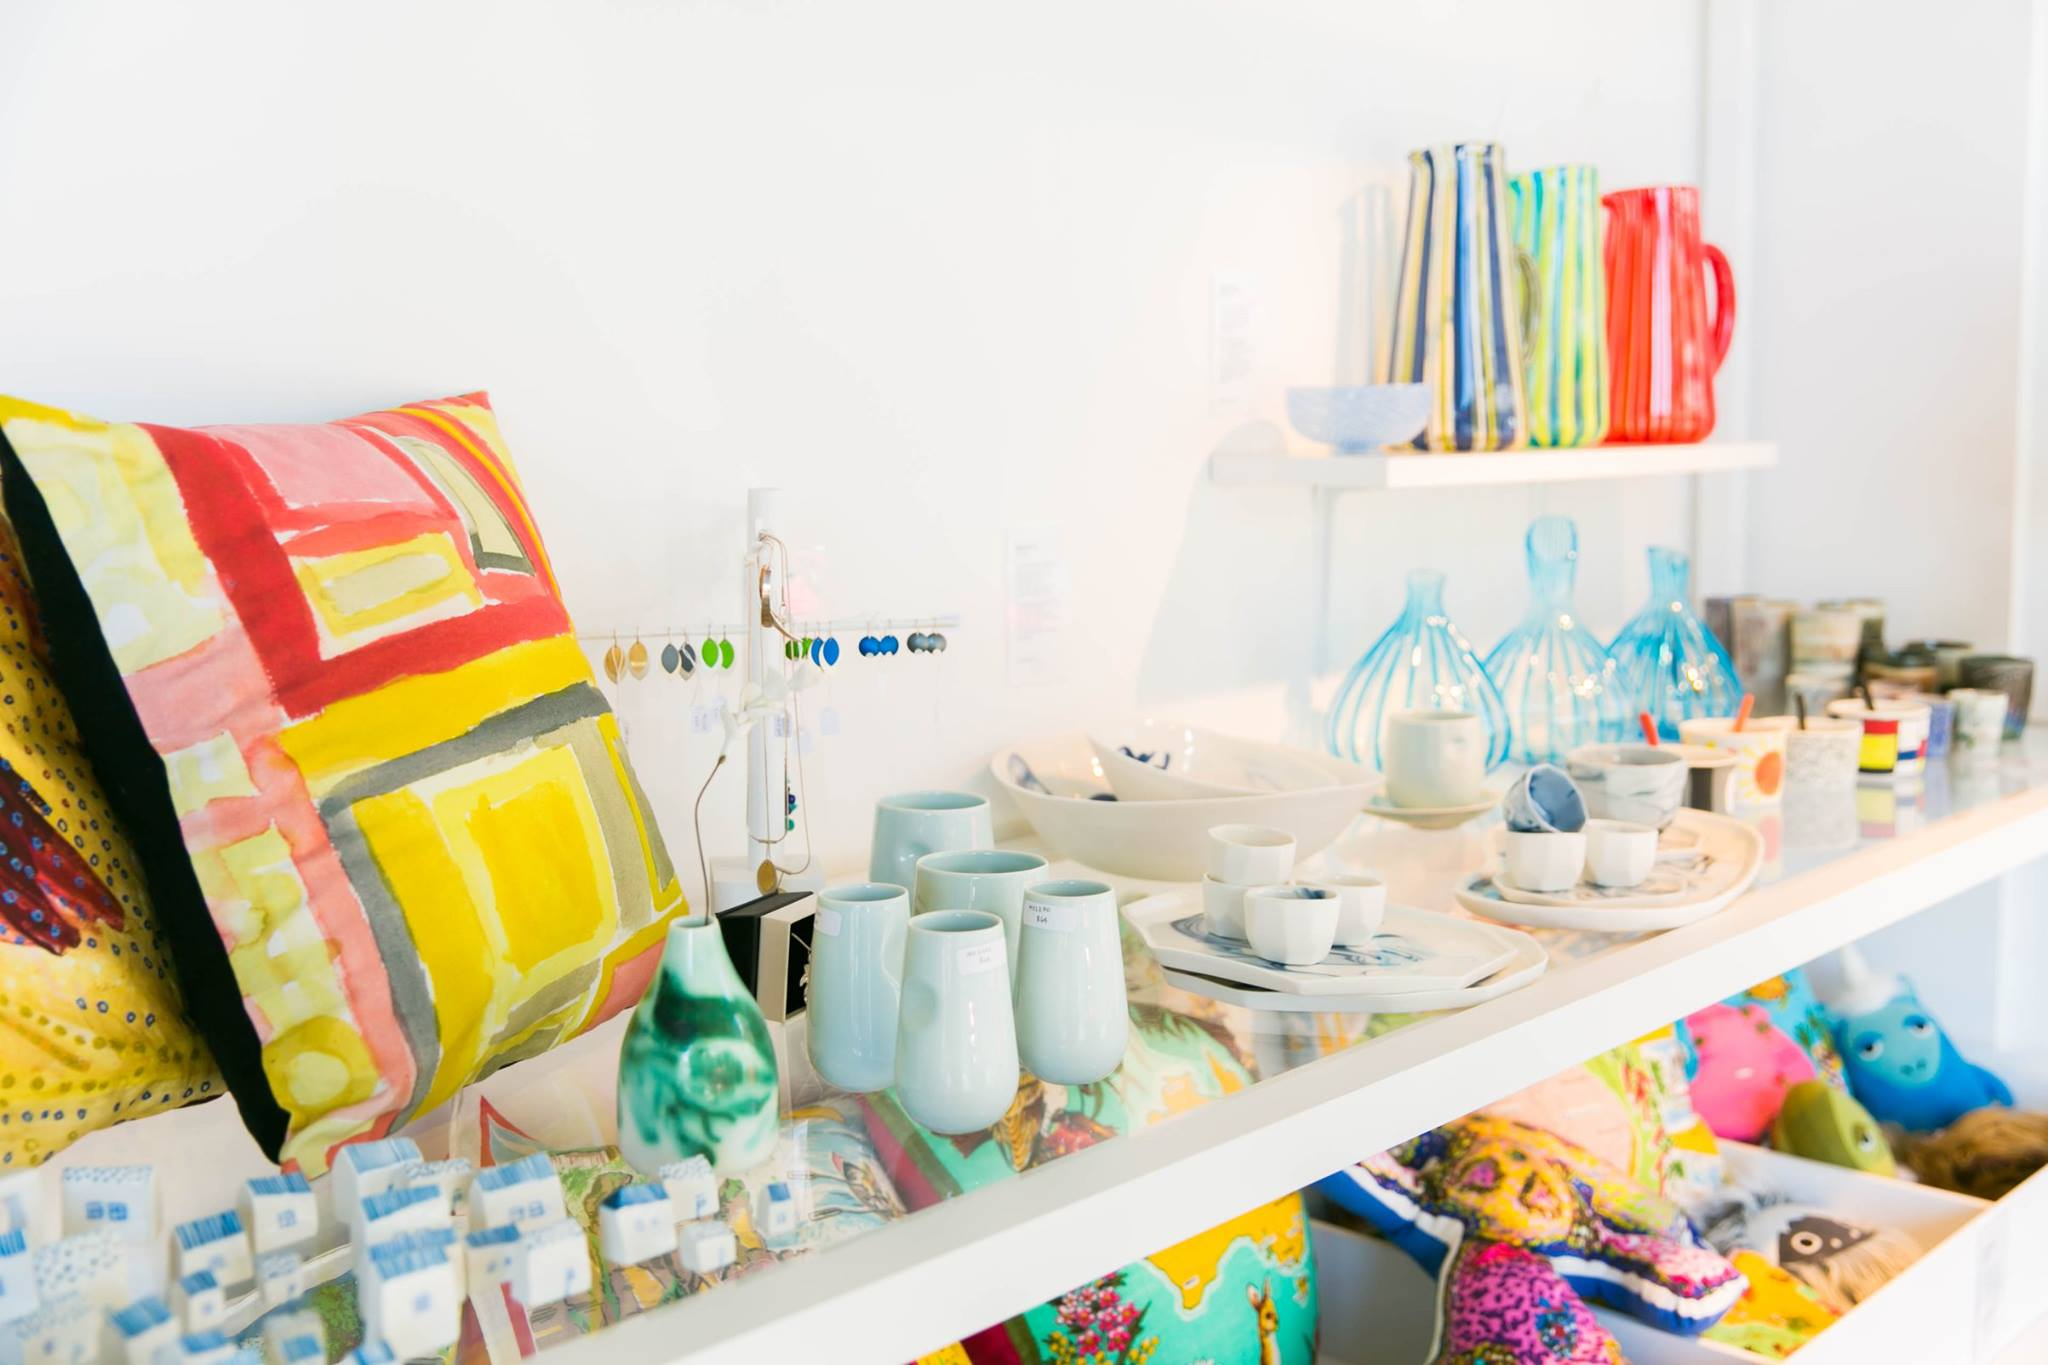 Object Shop at the Australian Design Centre, always full of gorgeous hand made hand crafted goodness. Perfect for Christmas, or anytime.  https://australiandesigncentre.com/